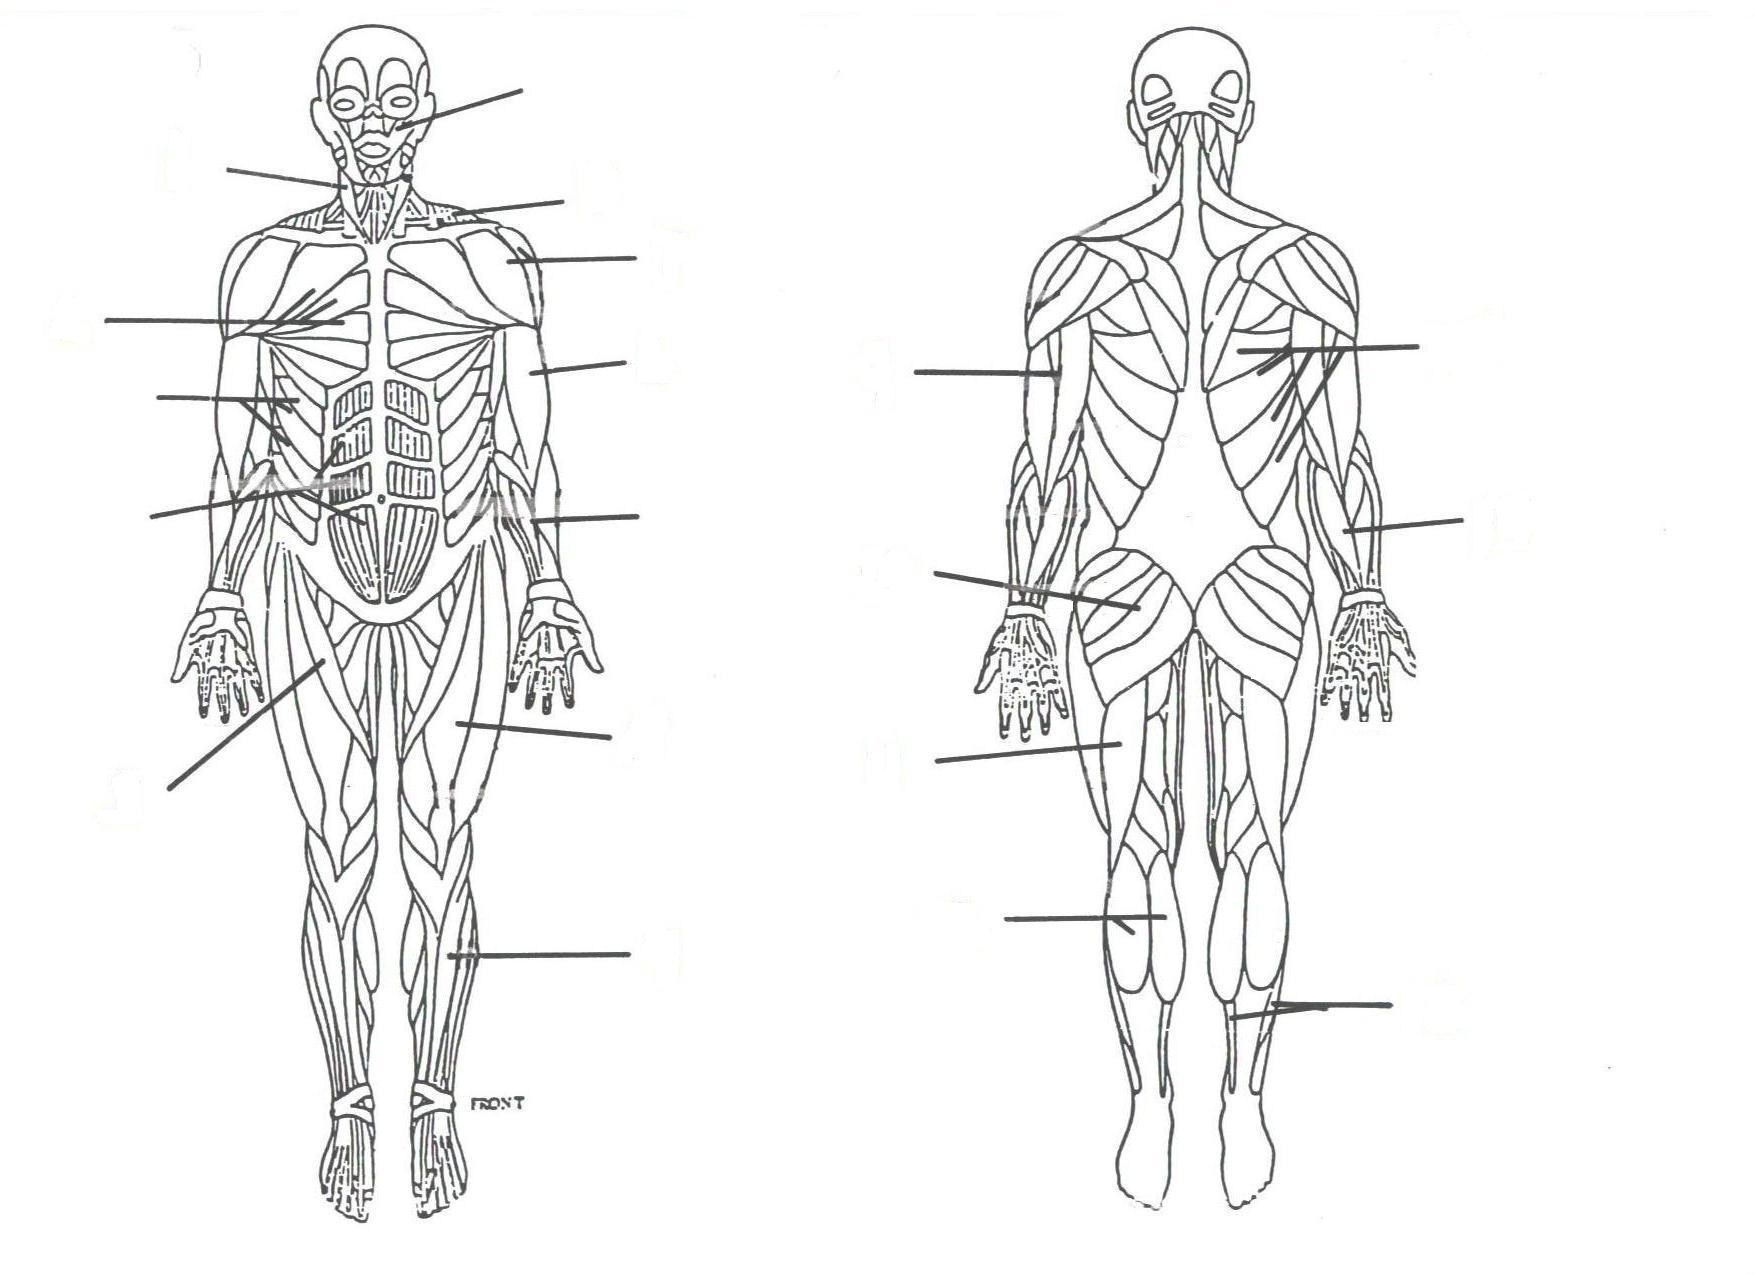 Human Skeleton Diagram Without Labels Human Anatomy Organs